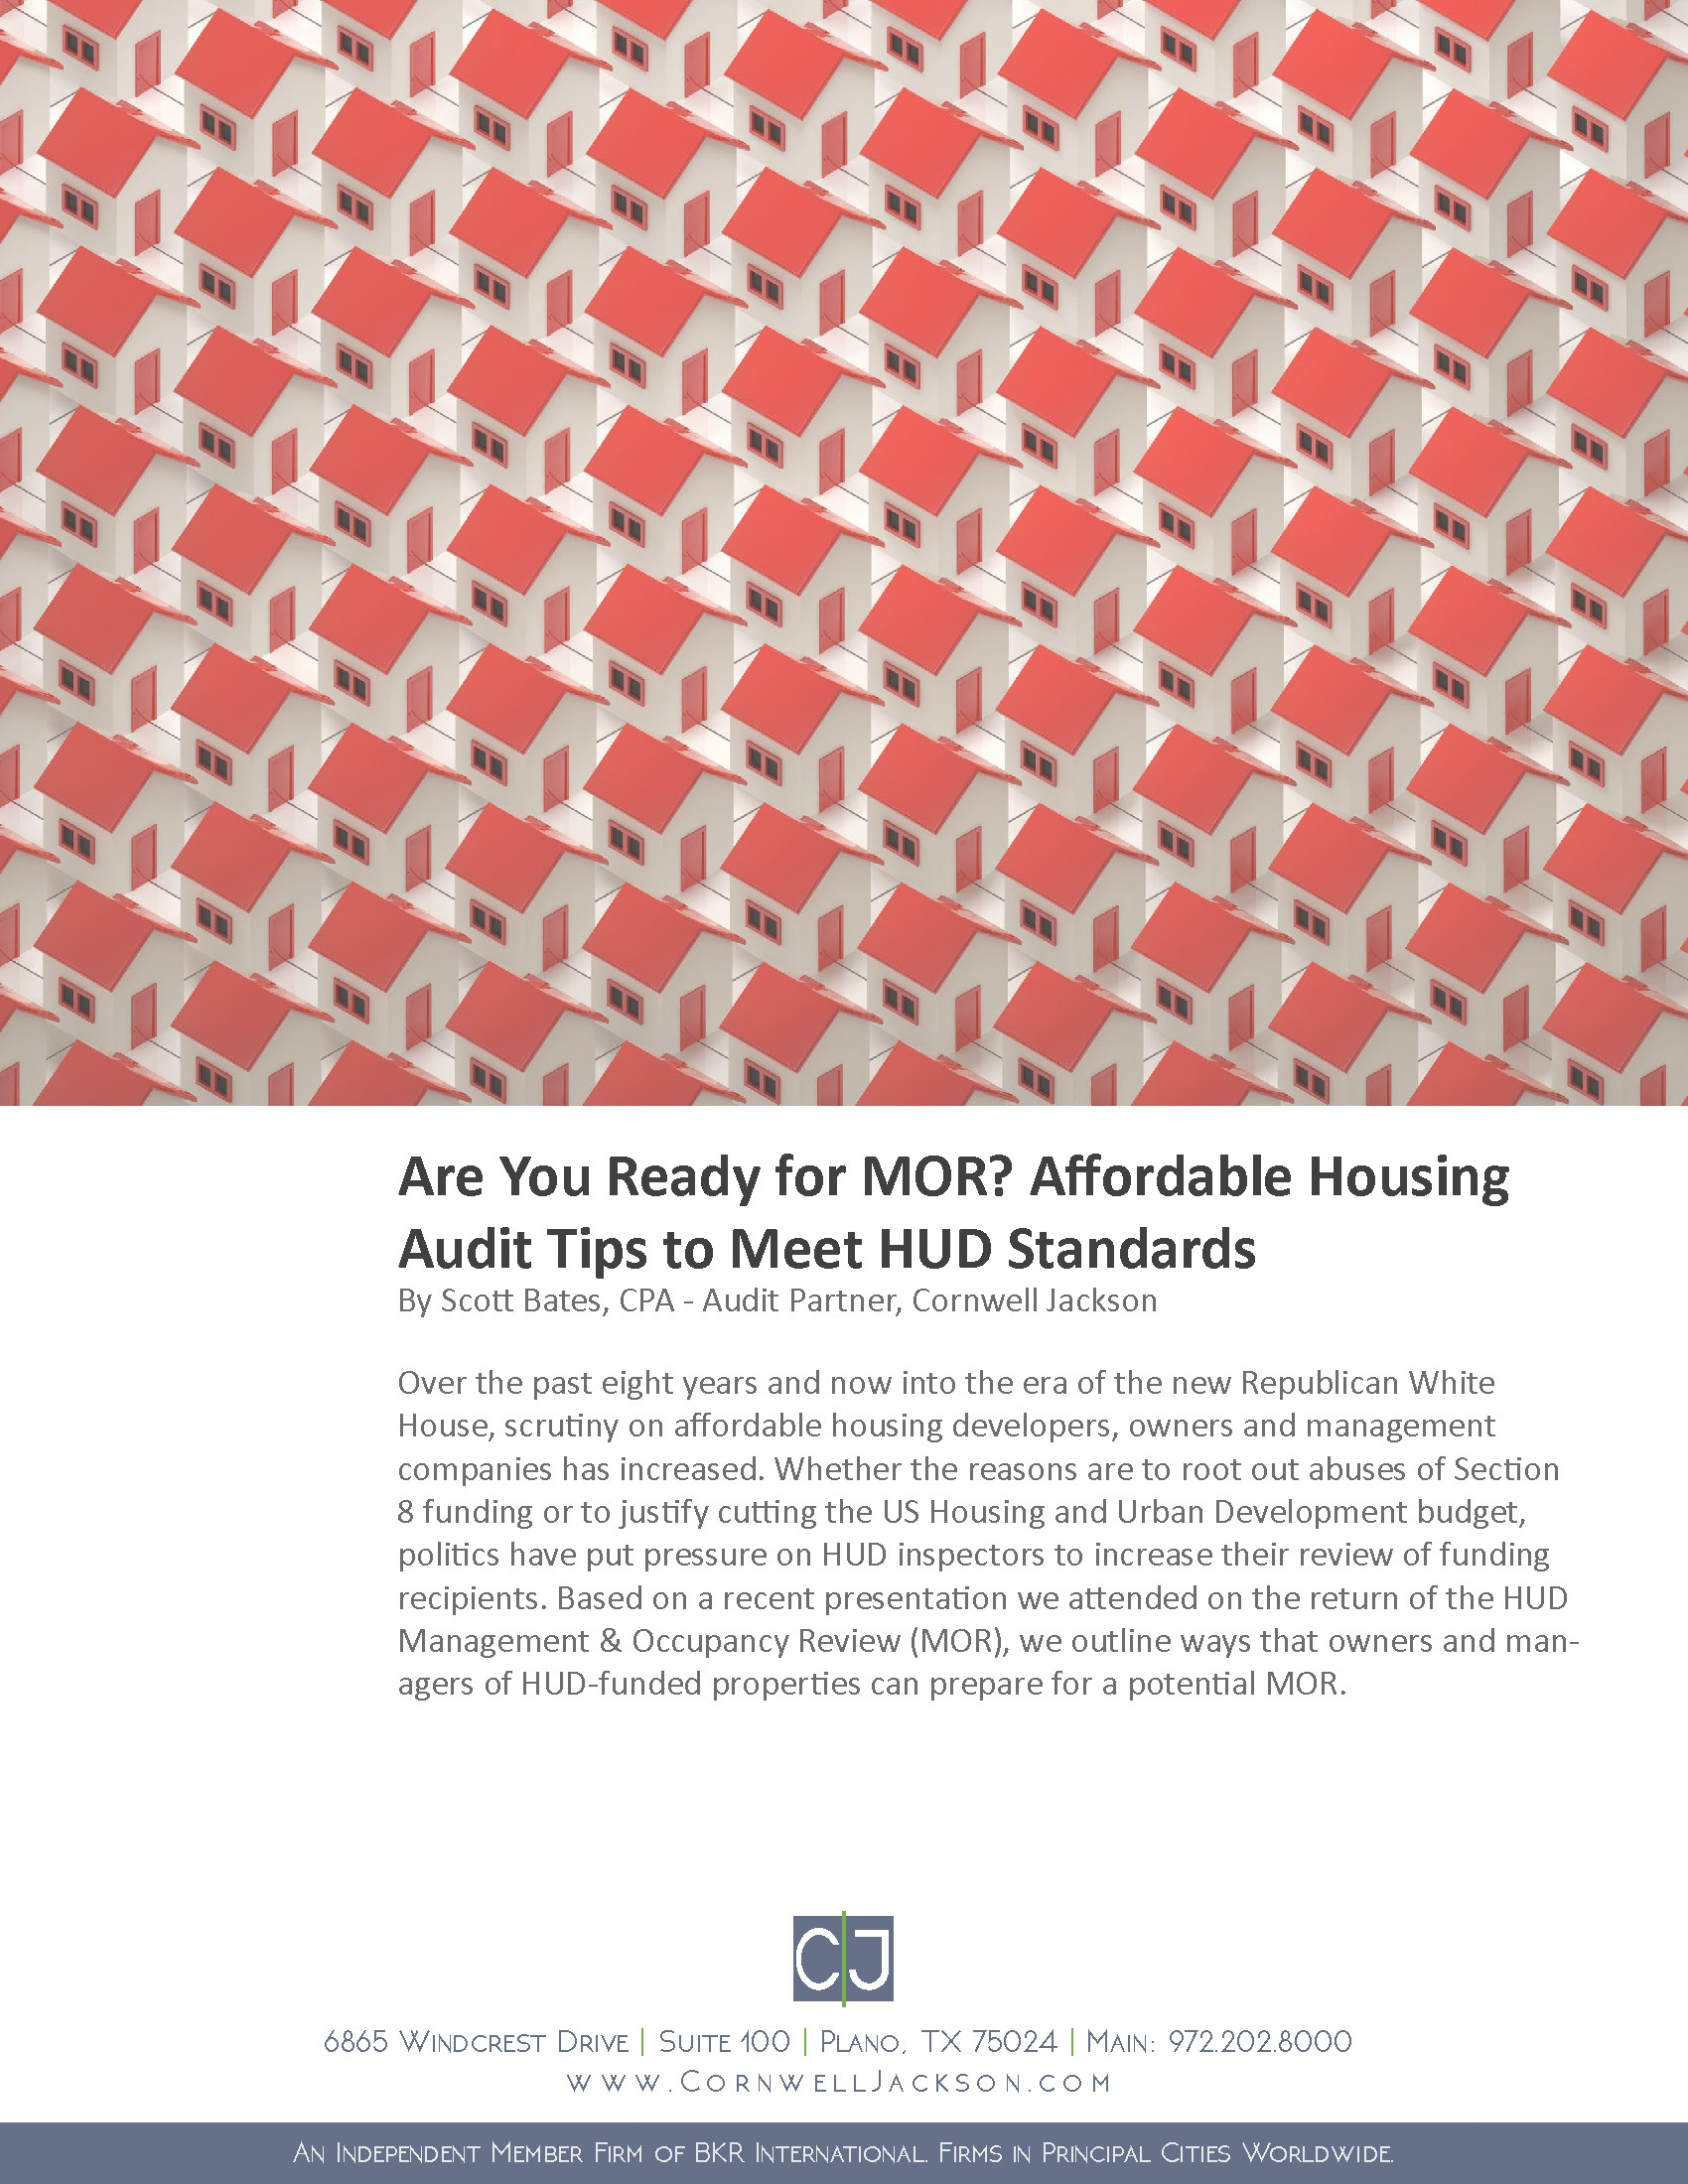 Cover - Affordable Housing Audit Tips to Meet HUD Standards - Scott Bates, CPA.jpg